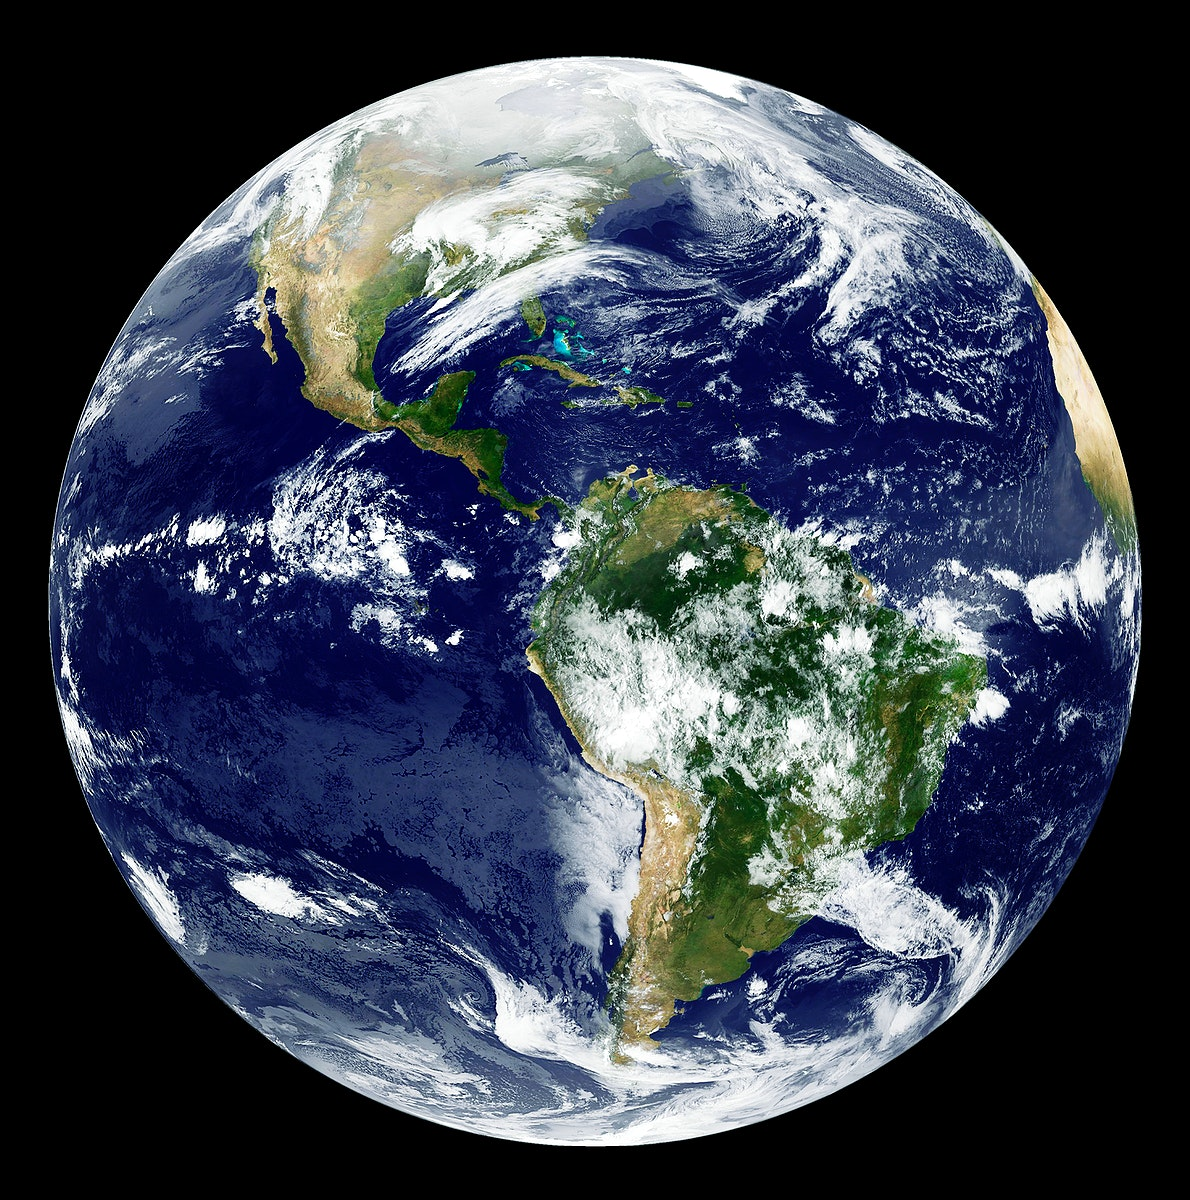 GOES 12 satellite image showing earth on March 25, 2010. Original from NASA . Digitally enhanced by rawpixel.